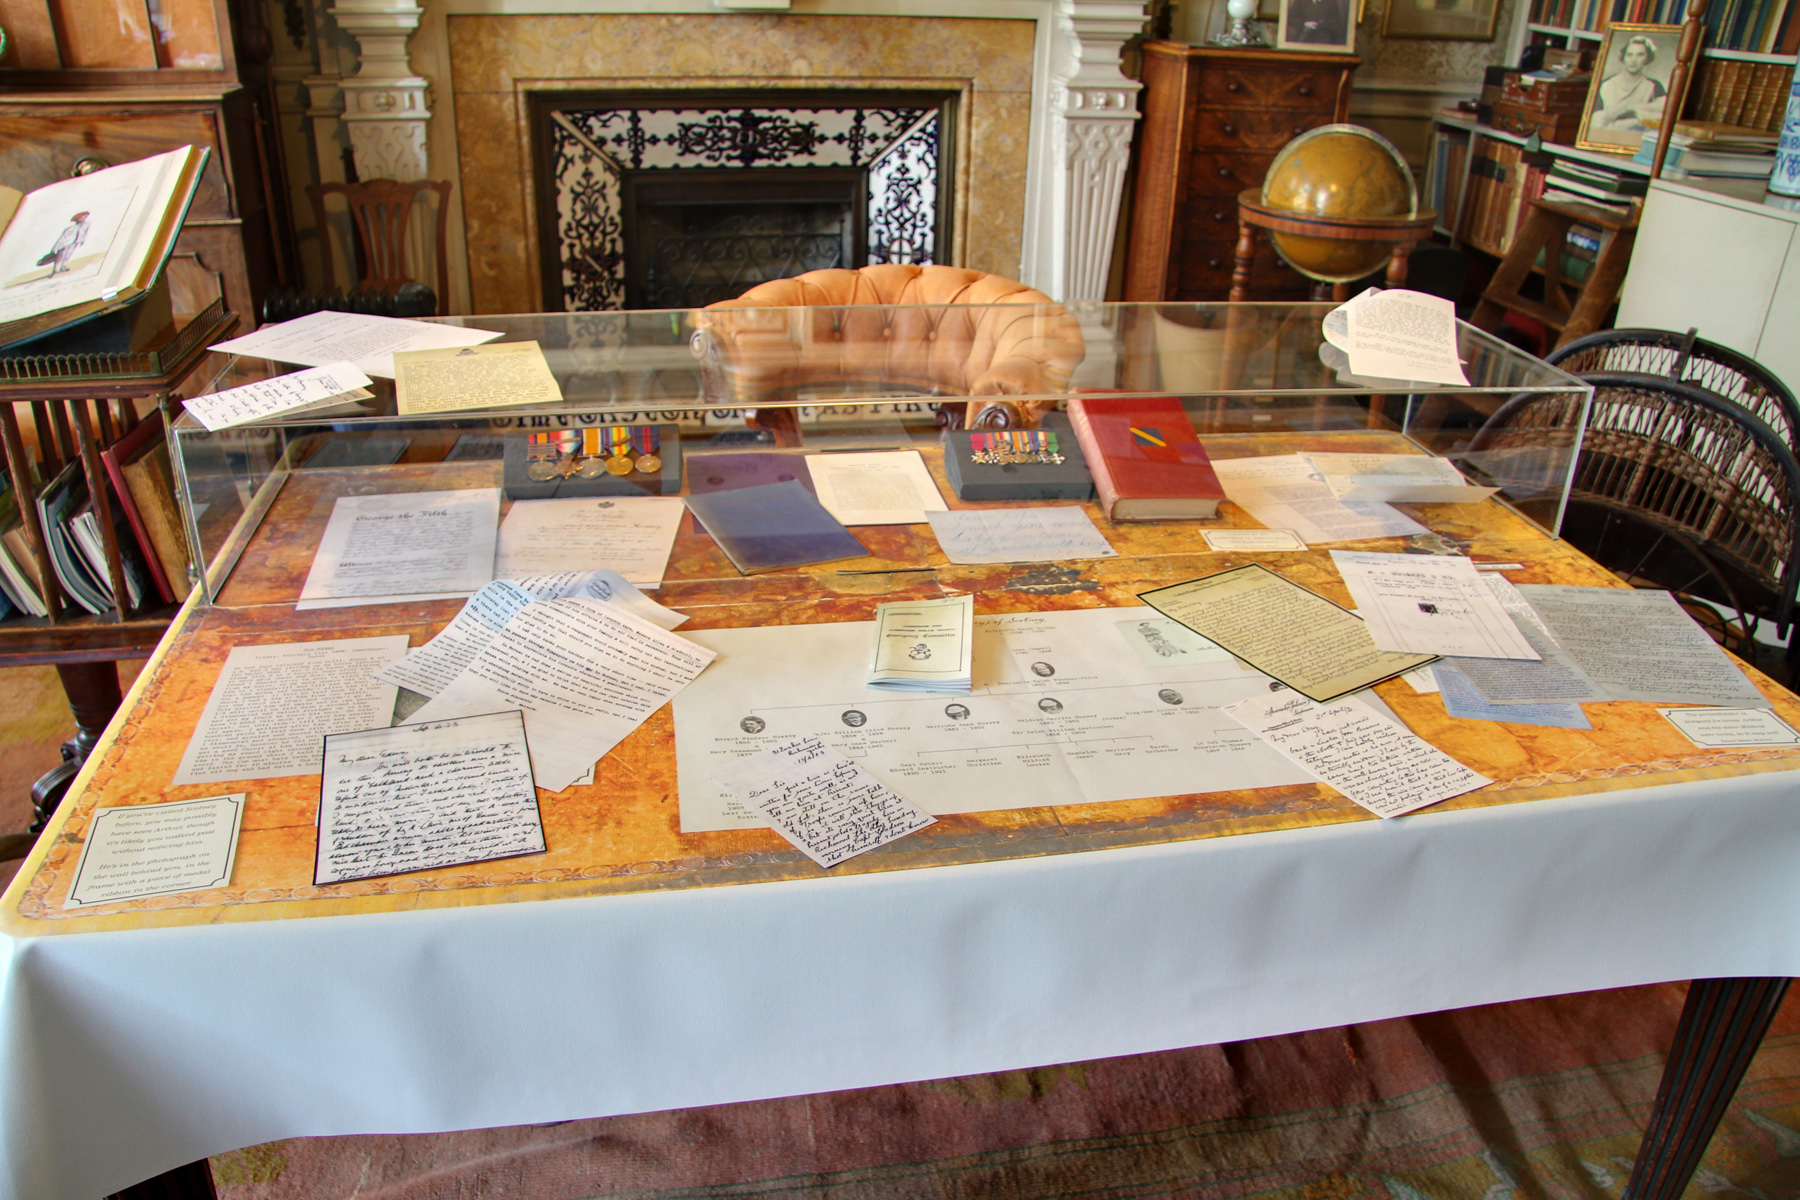 A reproduction of the desk surface in the study is printed with a family tree and reproduction letters, while other papers can be picked up.